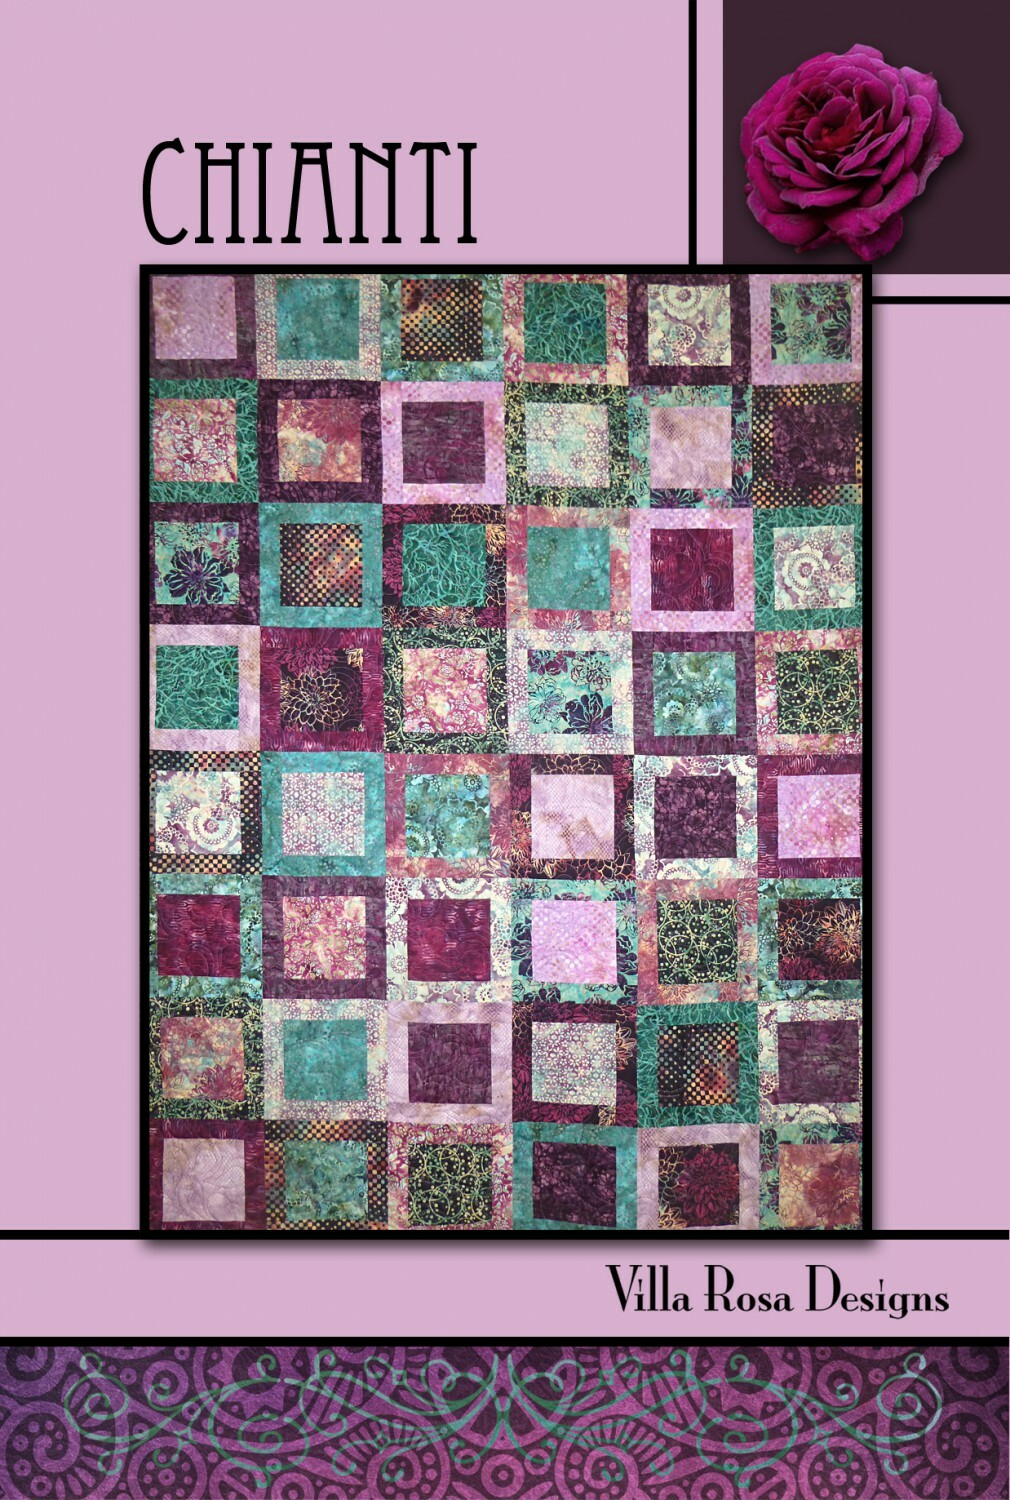 Chianti Quilt Kit - Blue/Teal/Green